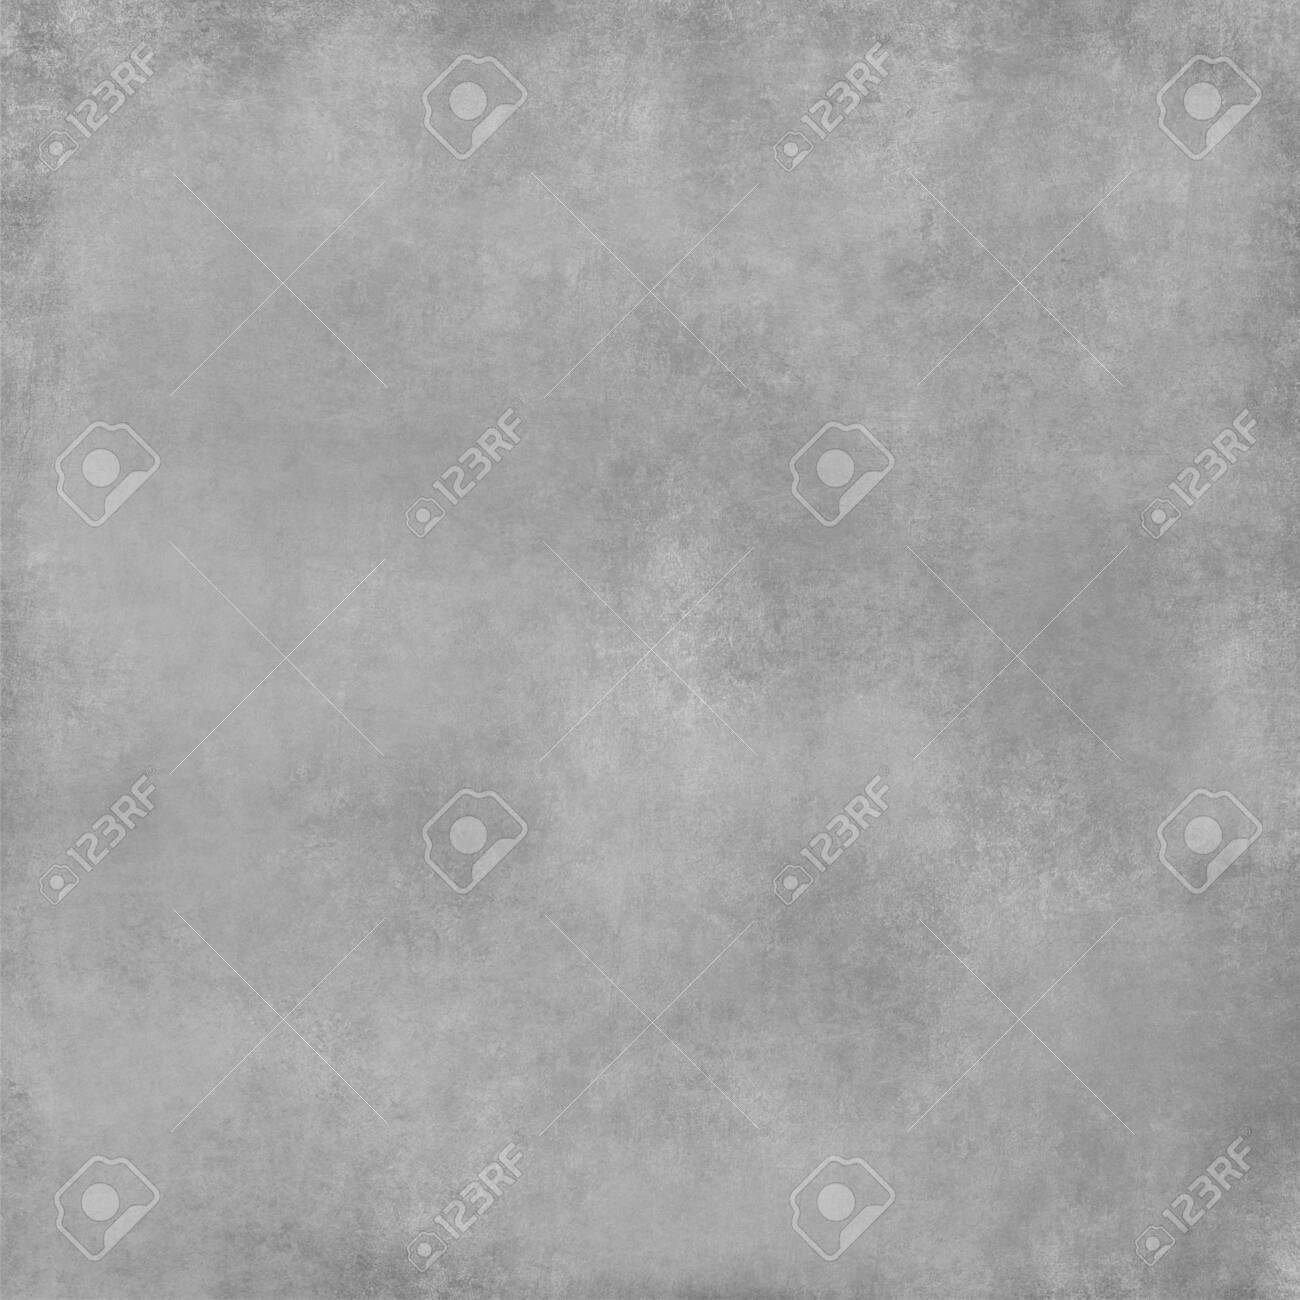 grunge abstract background - 140316447